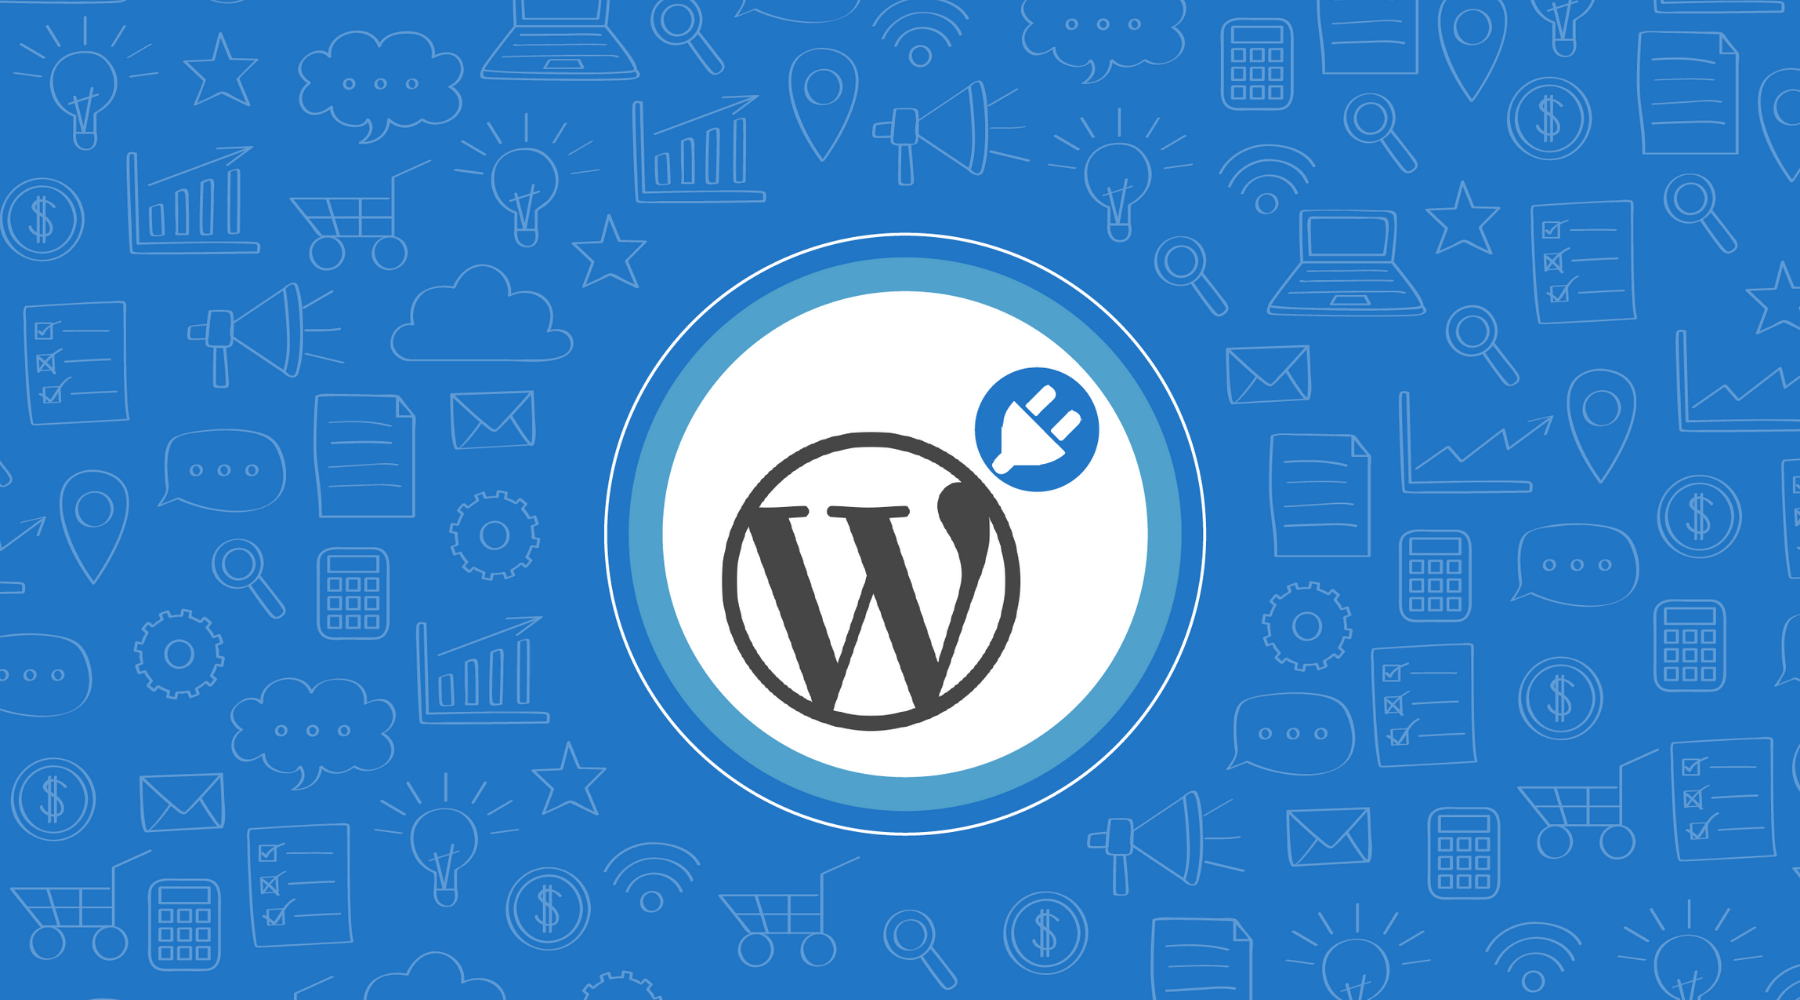 UPDATED List of Wordpress Development Blogs and Websites that Allow Guest Blogging wallpaper